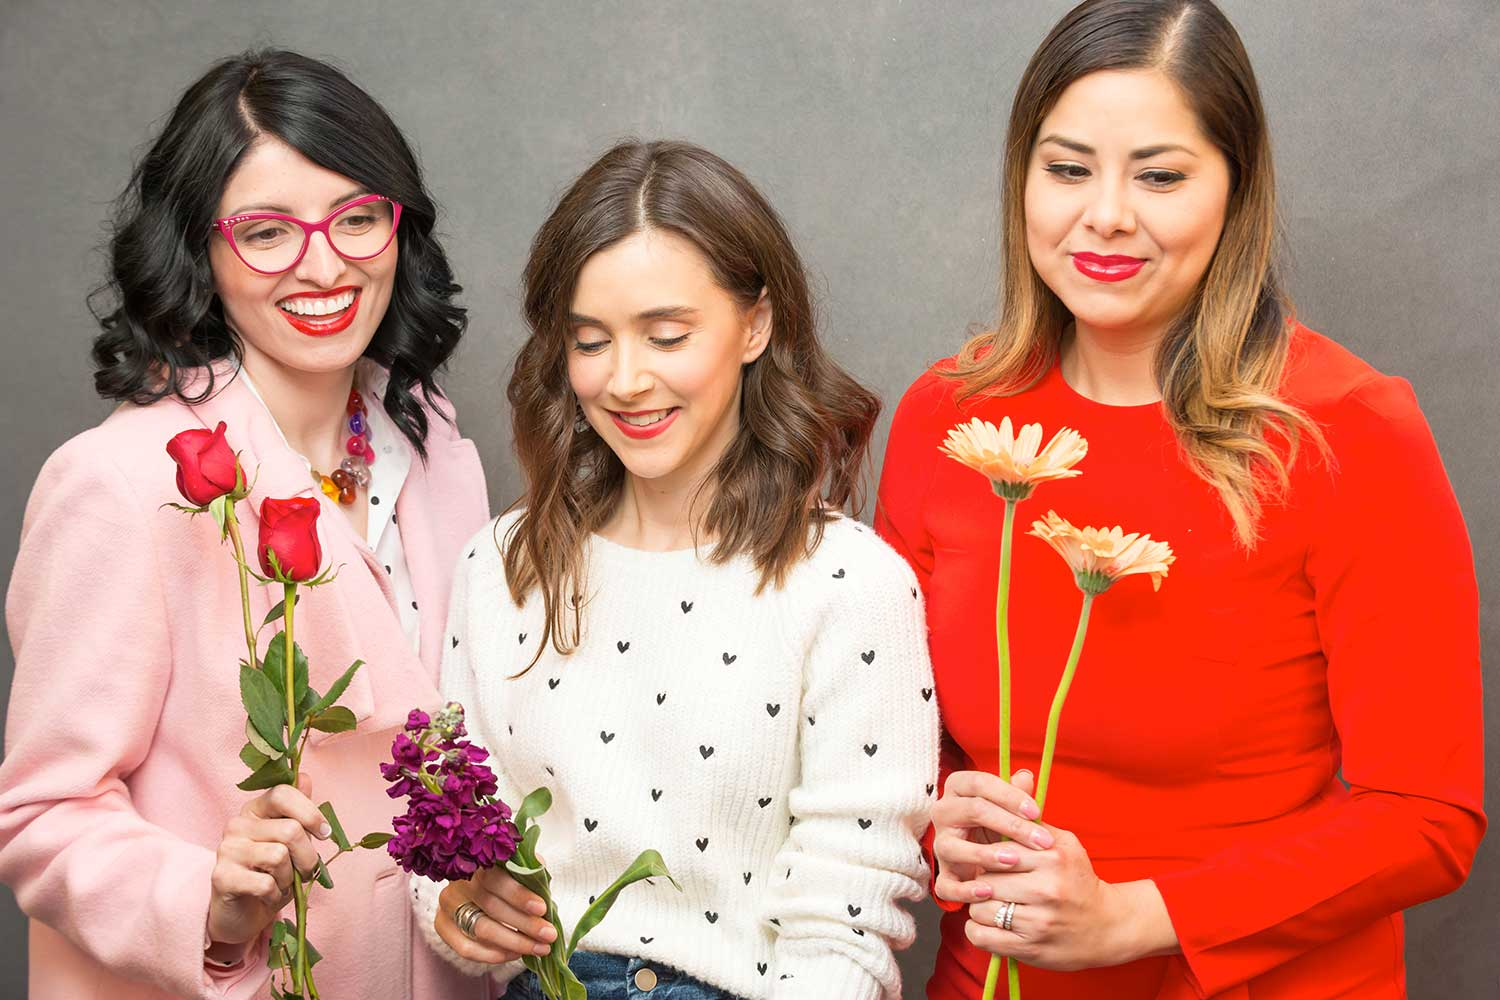 Jenna-Pilant-Lucky-Little-Mustardseed-Galentine's-Day-Floral-Fun-Pura-Sol-Photography-8